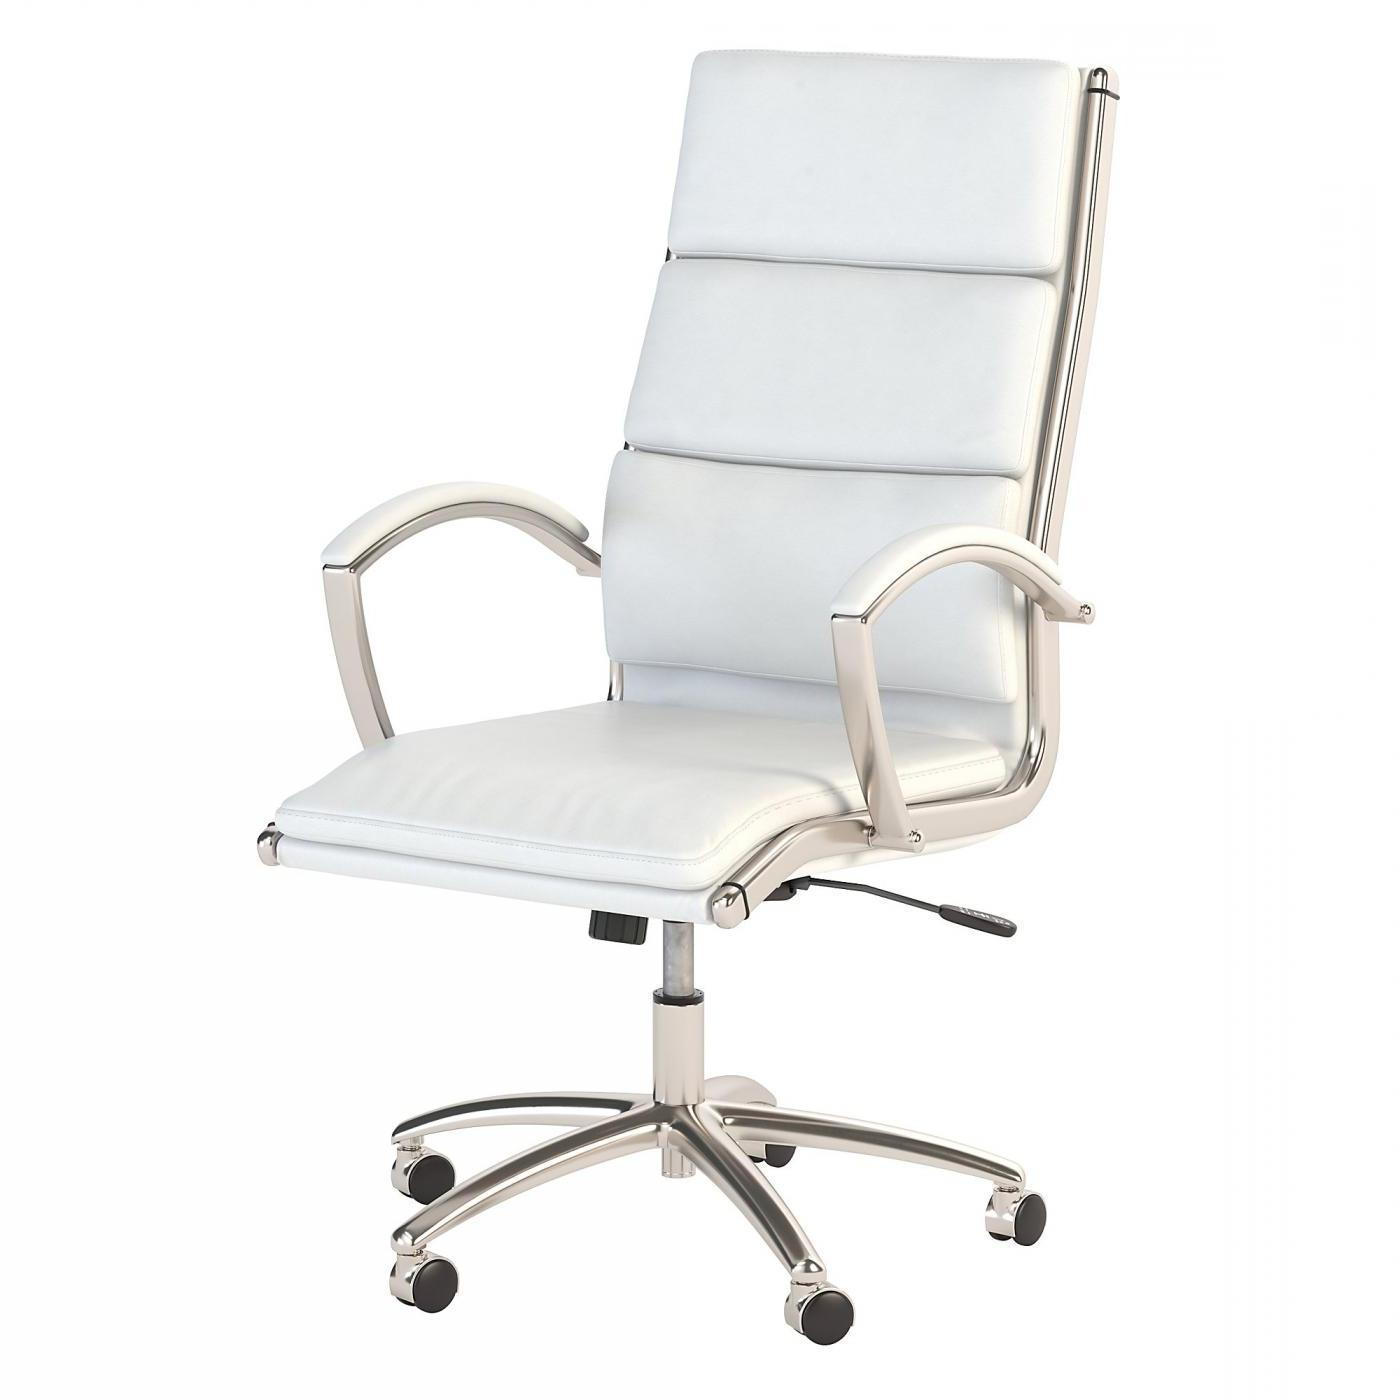 BUSH BUSINESS FURNITURE MODELO HIGH BACK LEATHER EXECUTIVE OFFICE CHAIR #EH-CH1701WHL-03. FREE SHIPPING:  SALE DEDUCT 10% MORE ENTER '10percent' IN COUPON CODE BOX WHILE CHECKING OUT.